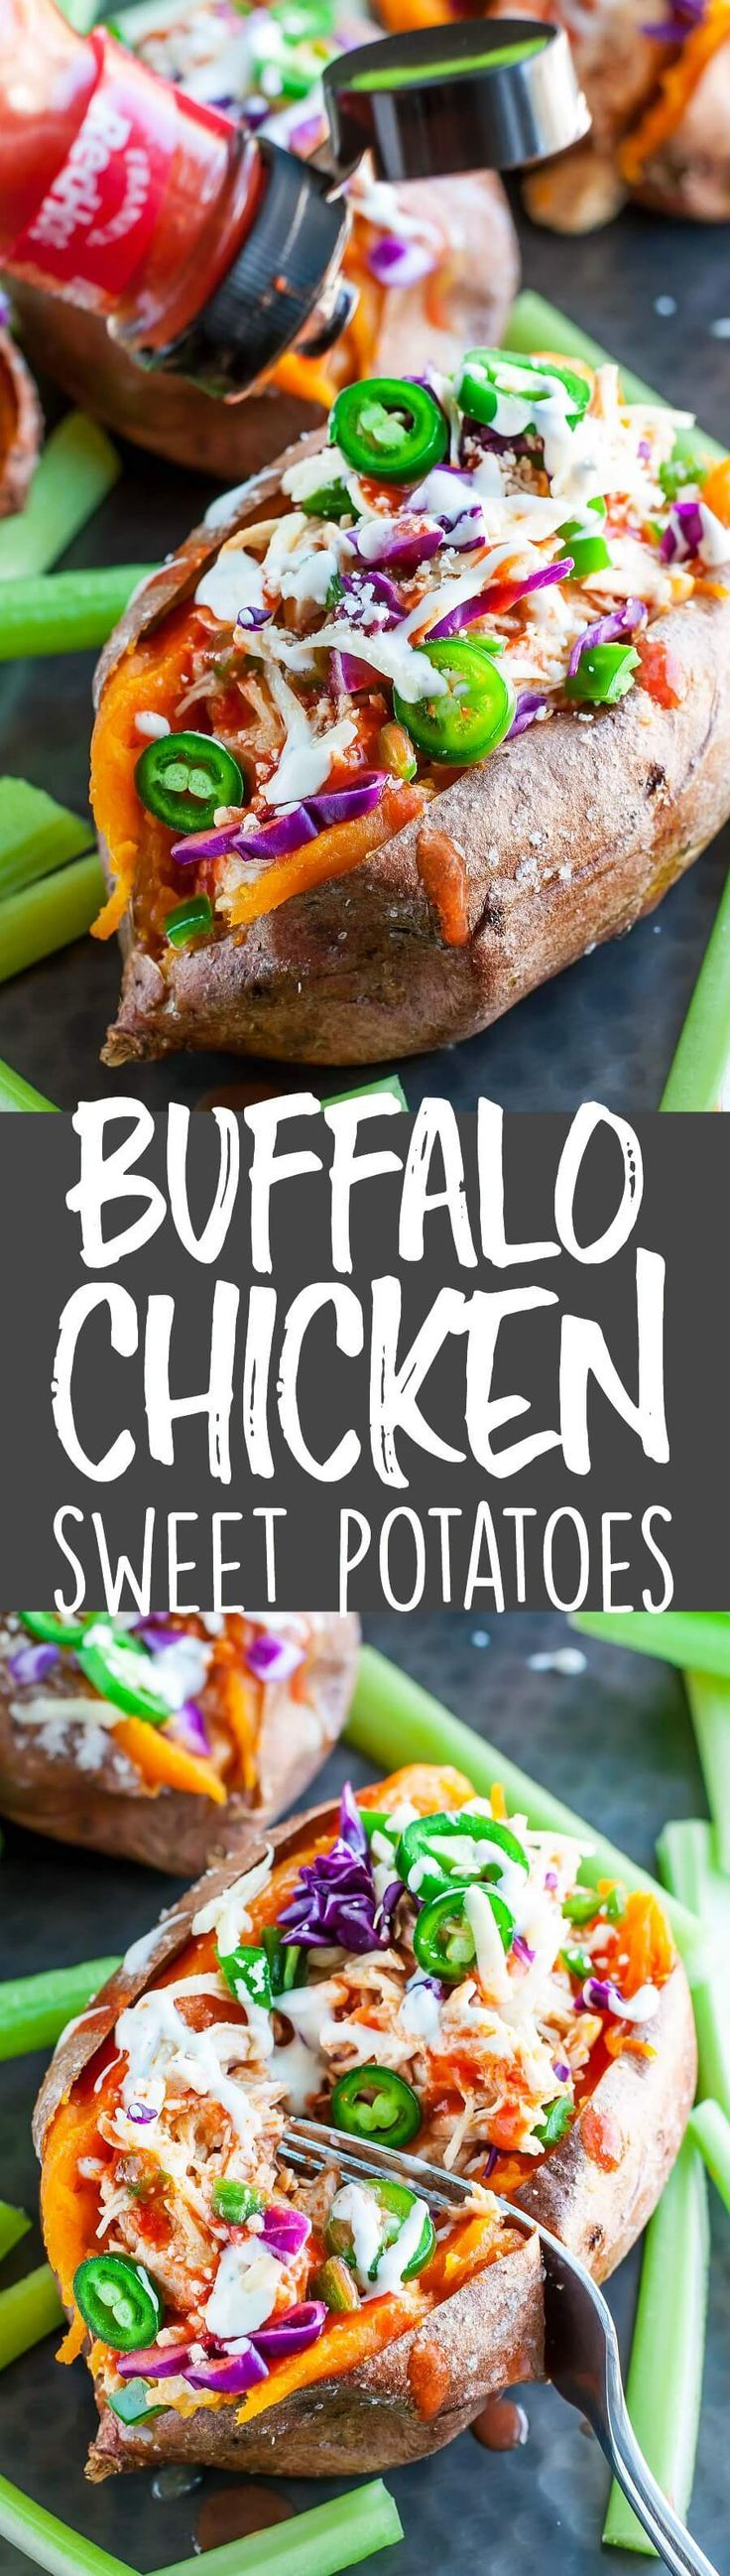 Easy, cheesy, and insanely delicious, these gluten-free Buffalo Chicken Stuffed Sweet Potatoes make a fantastic meal any day of the week!